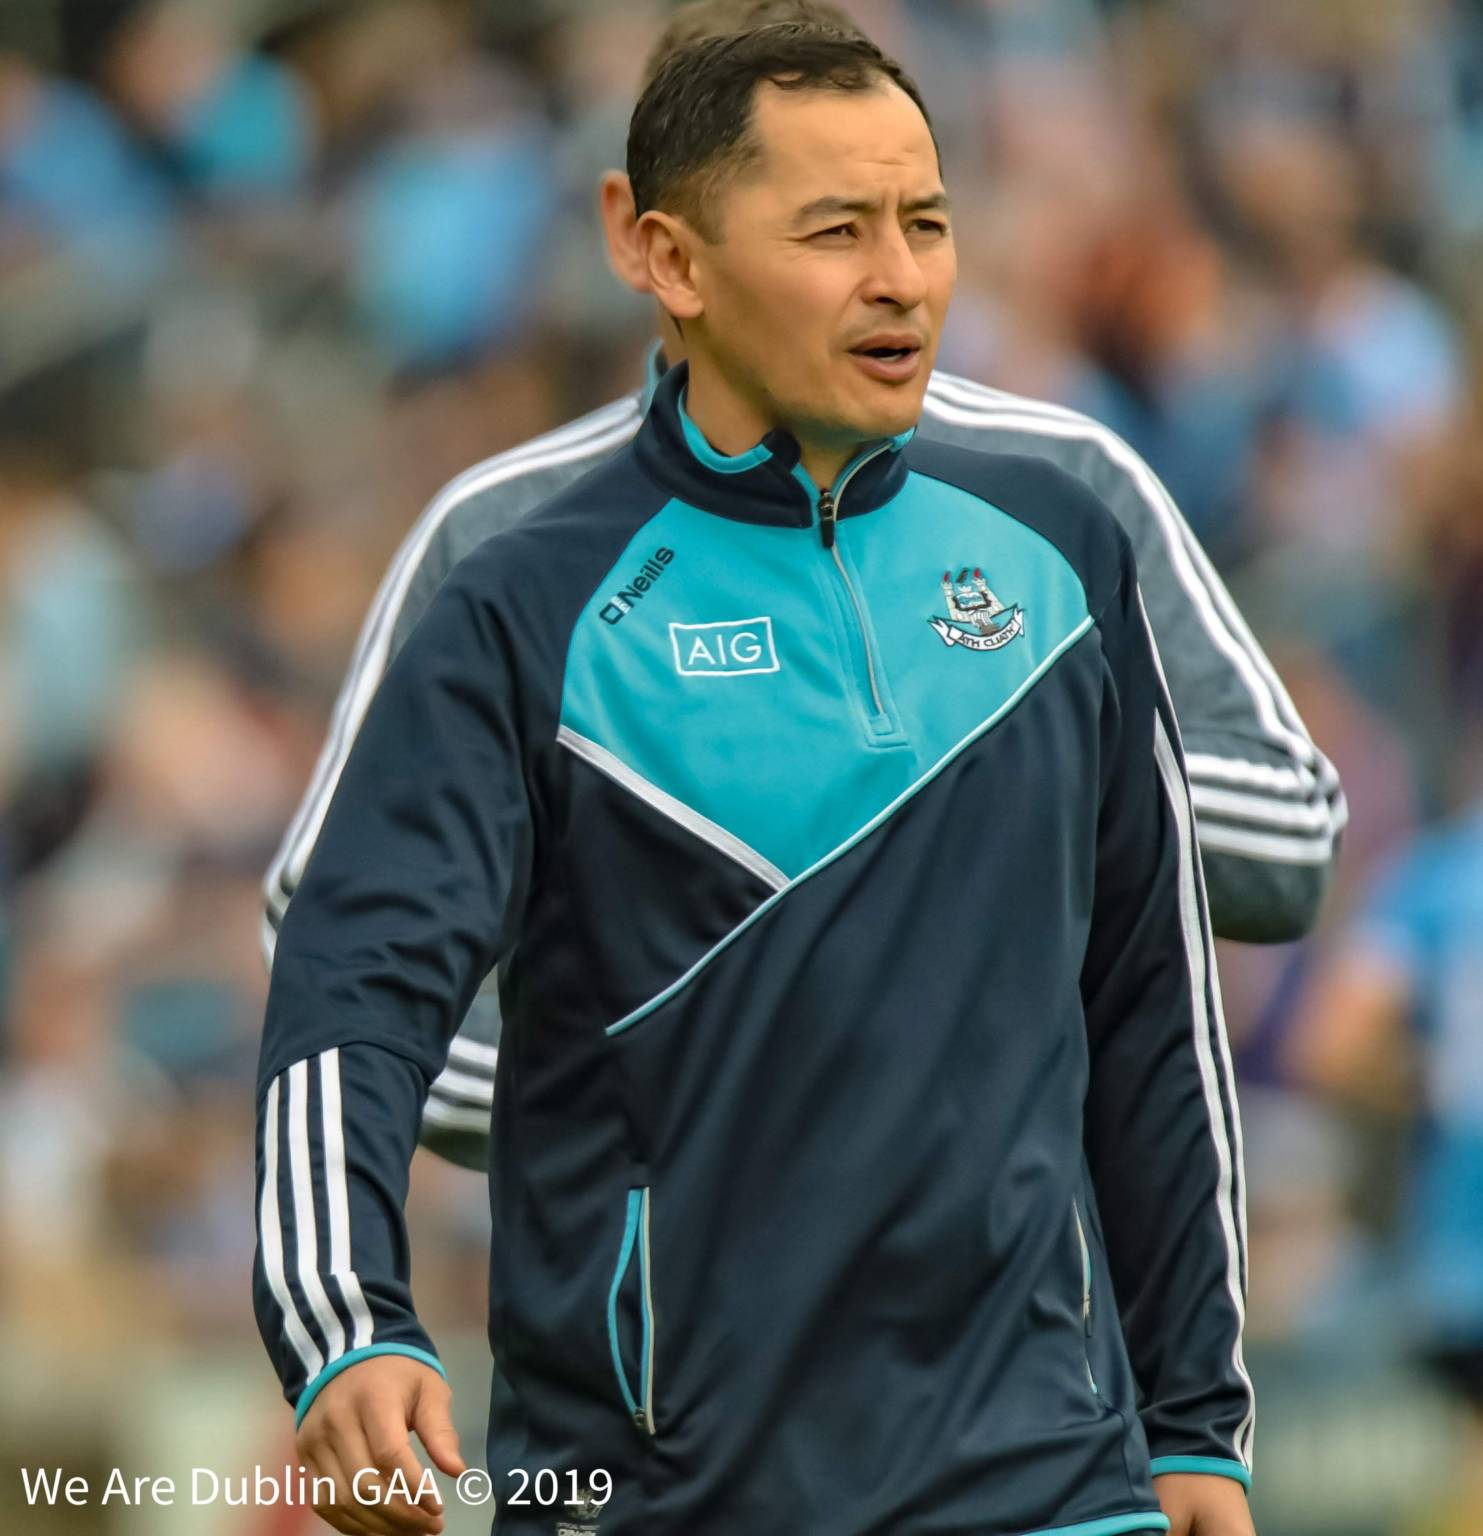 Dublin legend Jason Sherlock spoke about the racial slagging he received during his playing career on Sunday night's episode of The Sunday Game